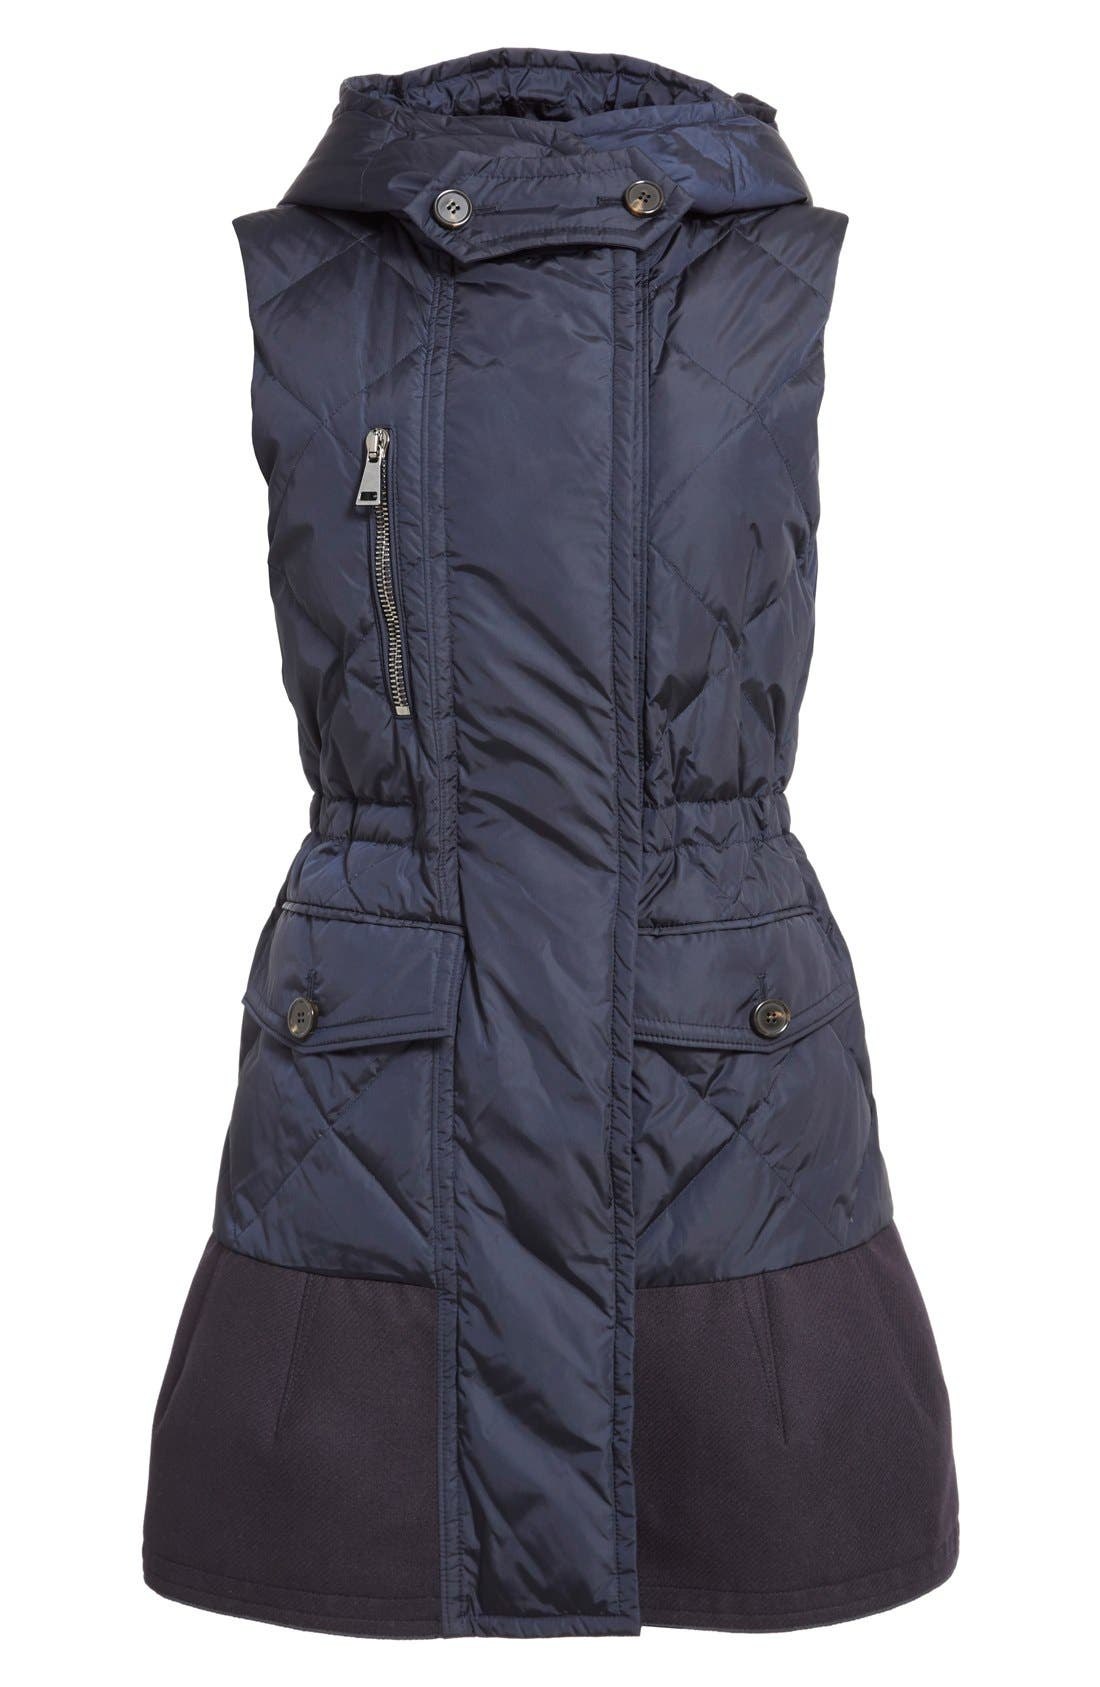 'Eles' Water Resistant Quilted Hooded Down Vest,                             Alternate thumbnail 11, color,                             419